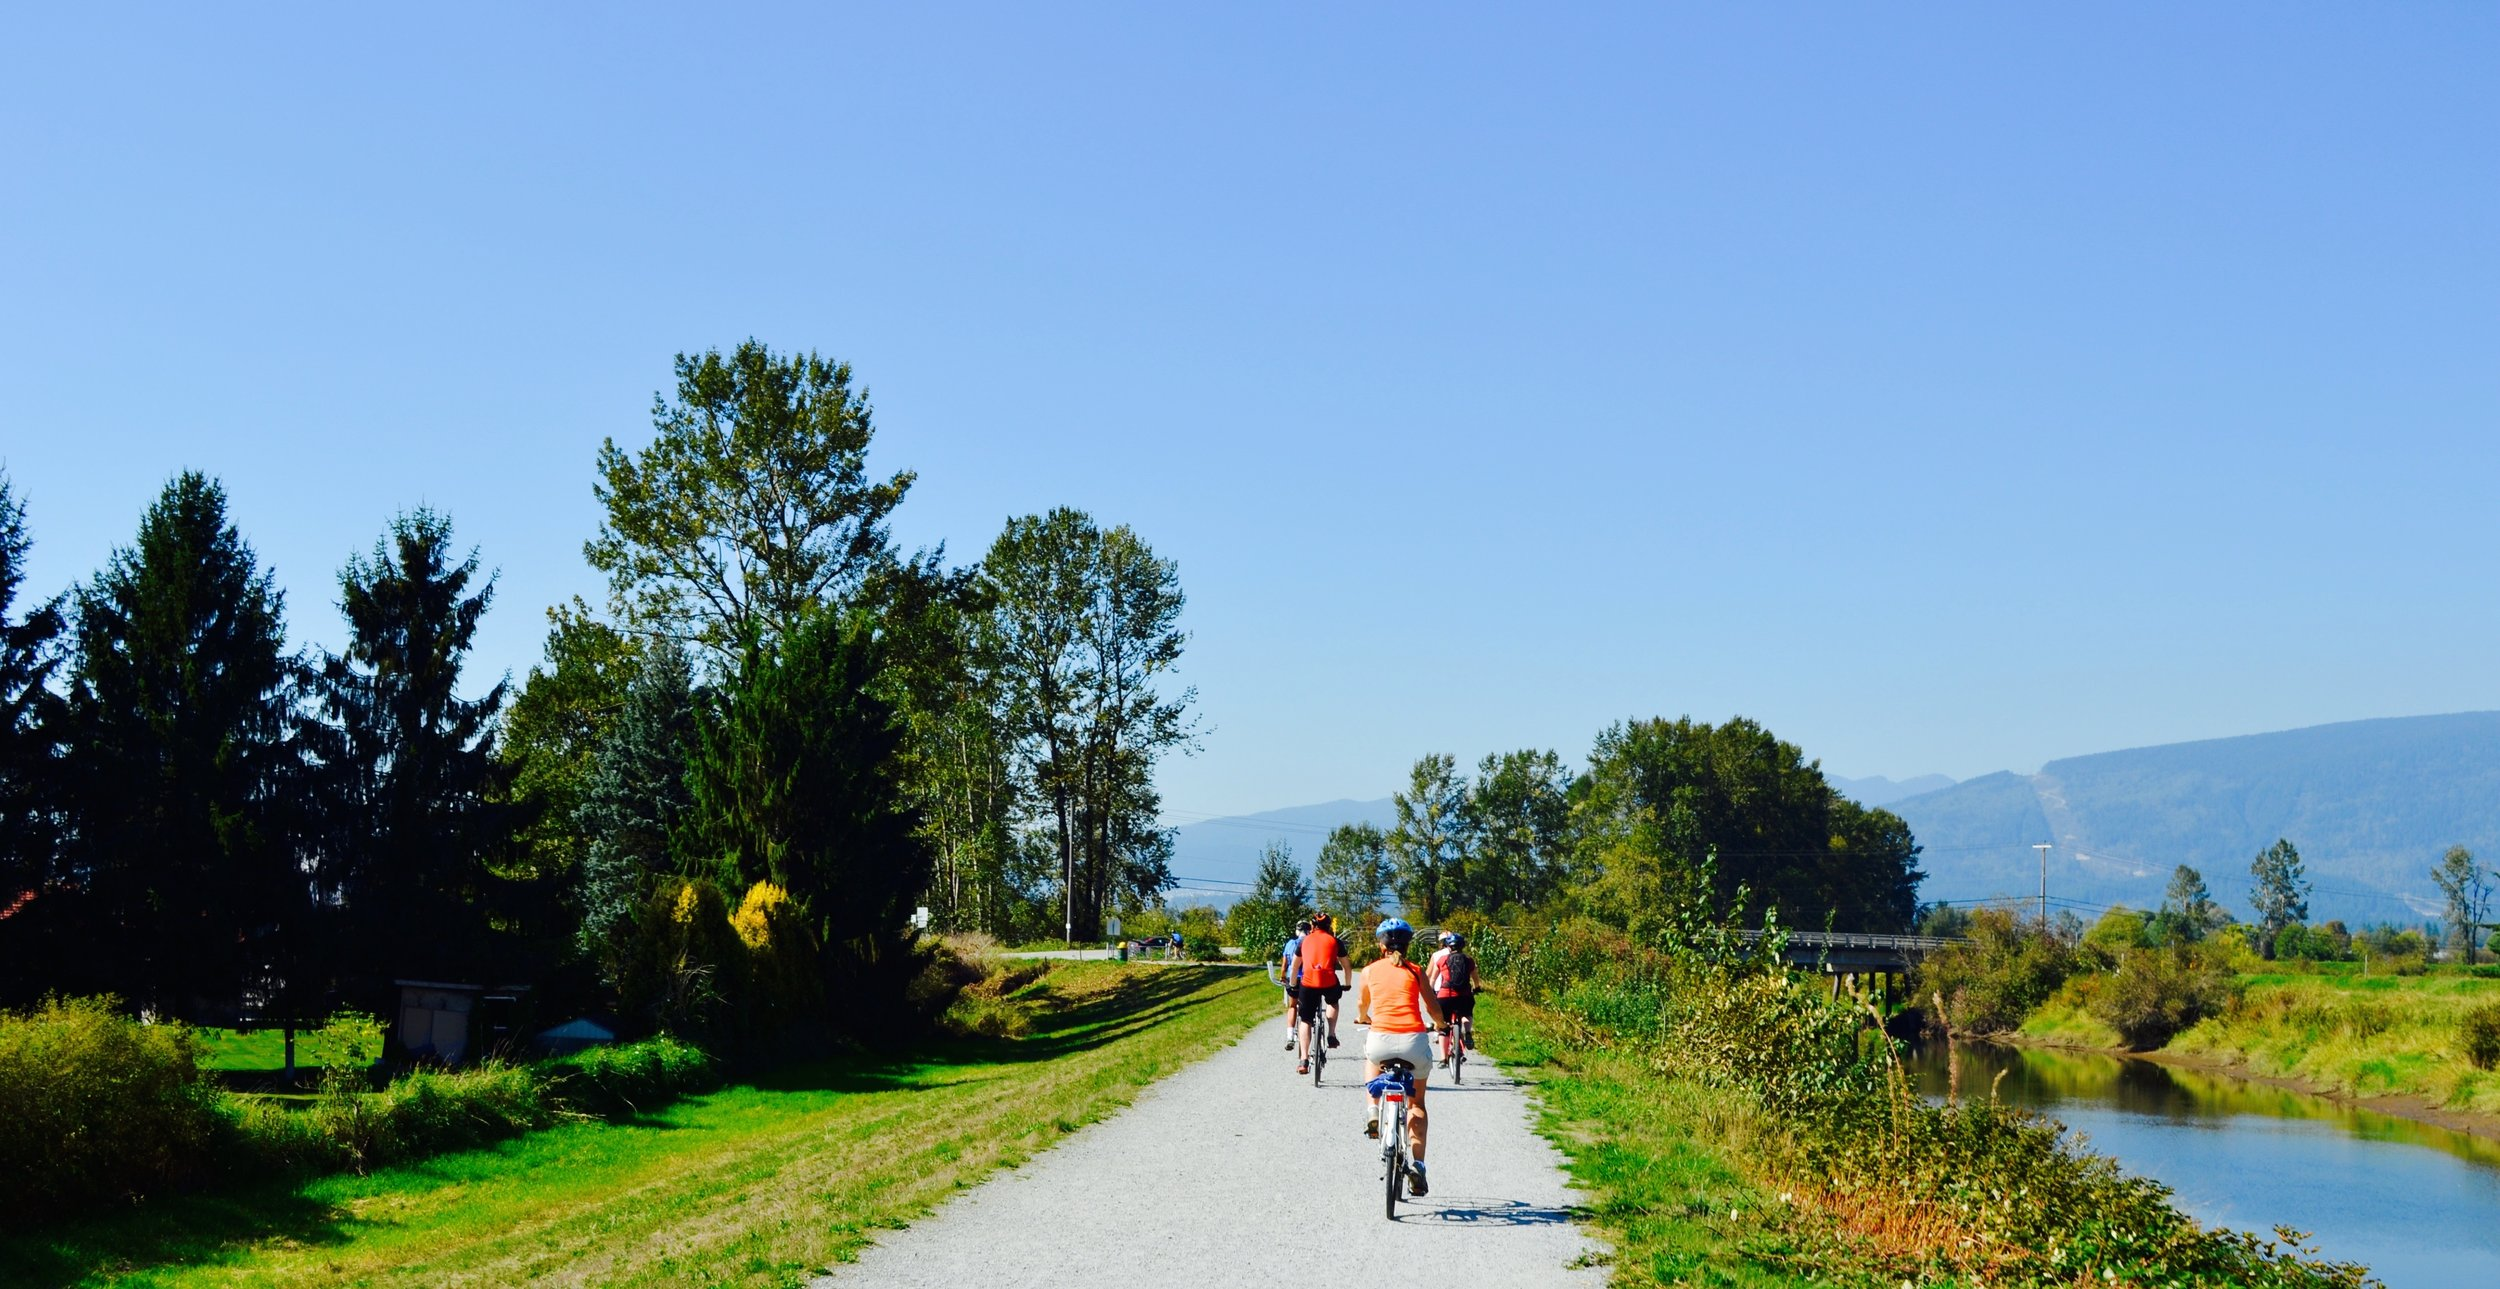 Riding the Trans Canada Trail at Pitt Meadows